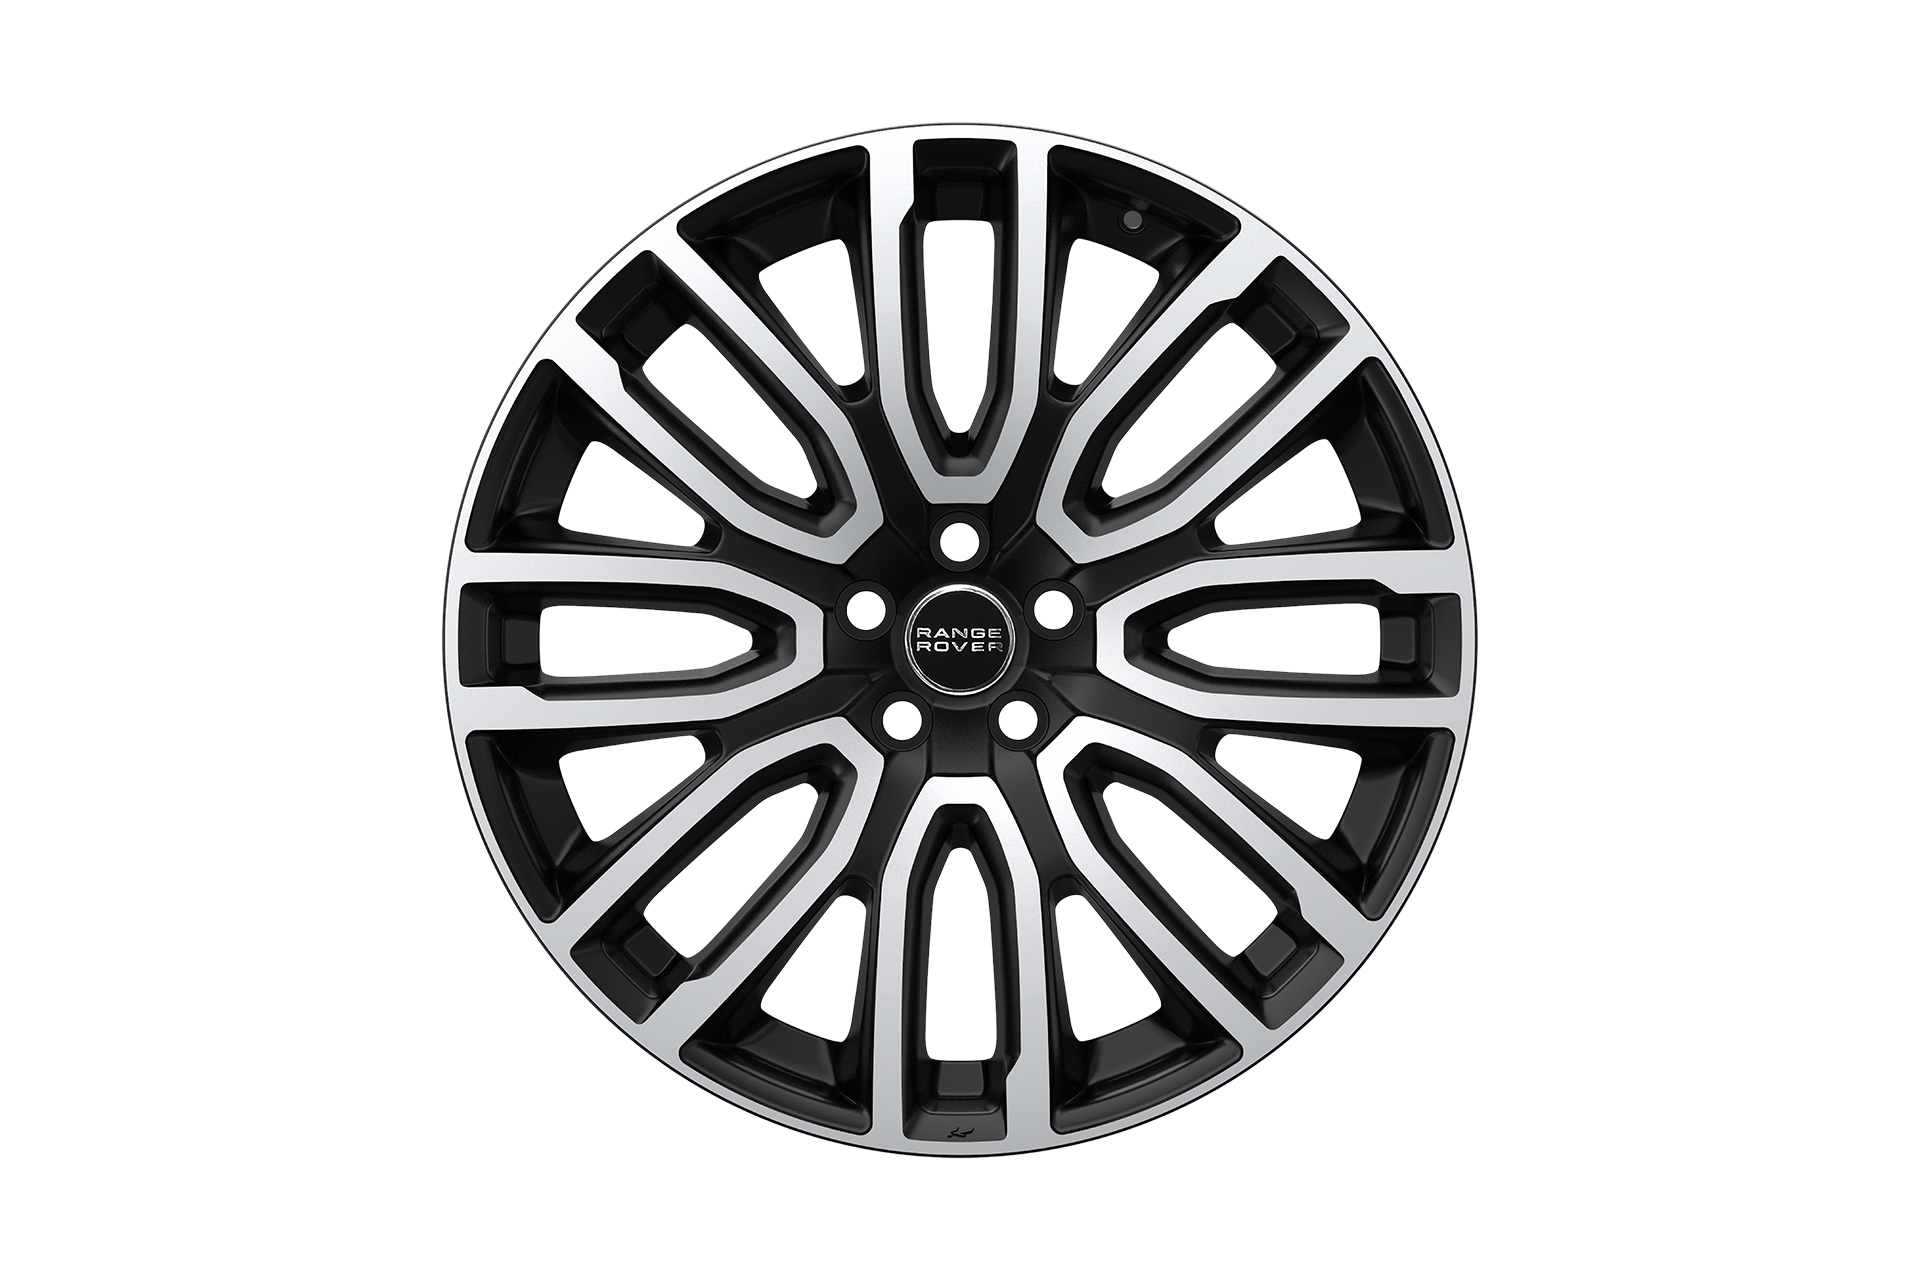 Range Rover Sport (2013-2018) Pace Car Light Alloy Wheels Image 4648